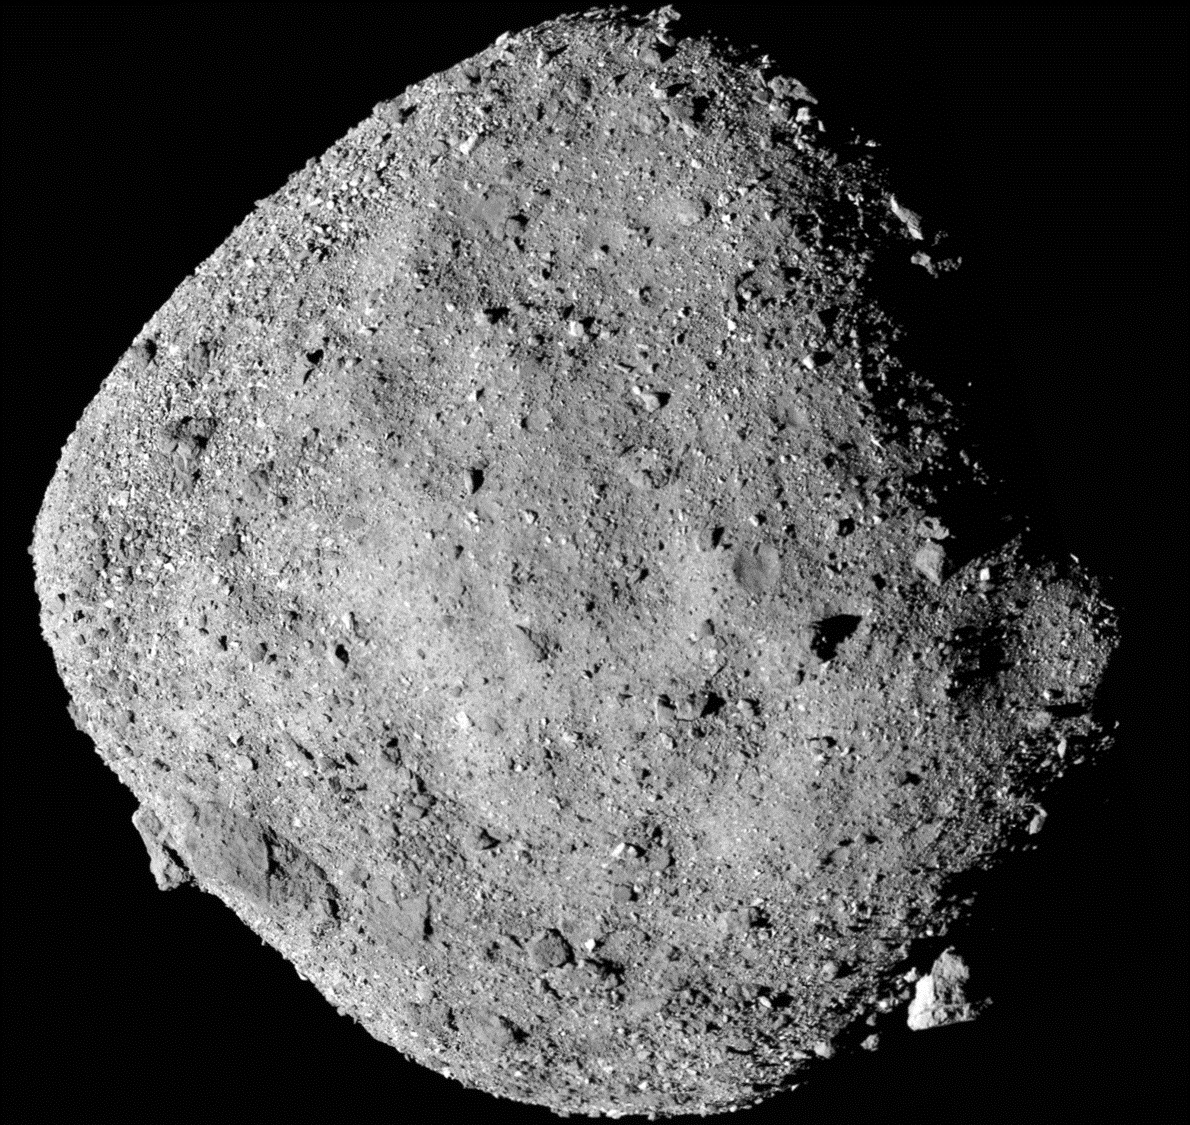 Water found on asteroid by OSIRIS-REx explorer